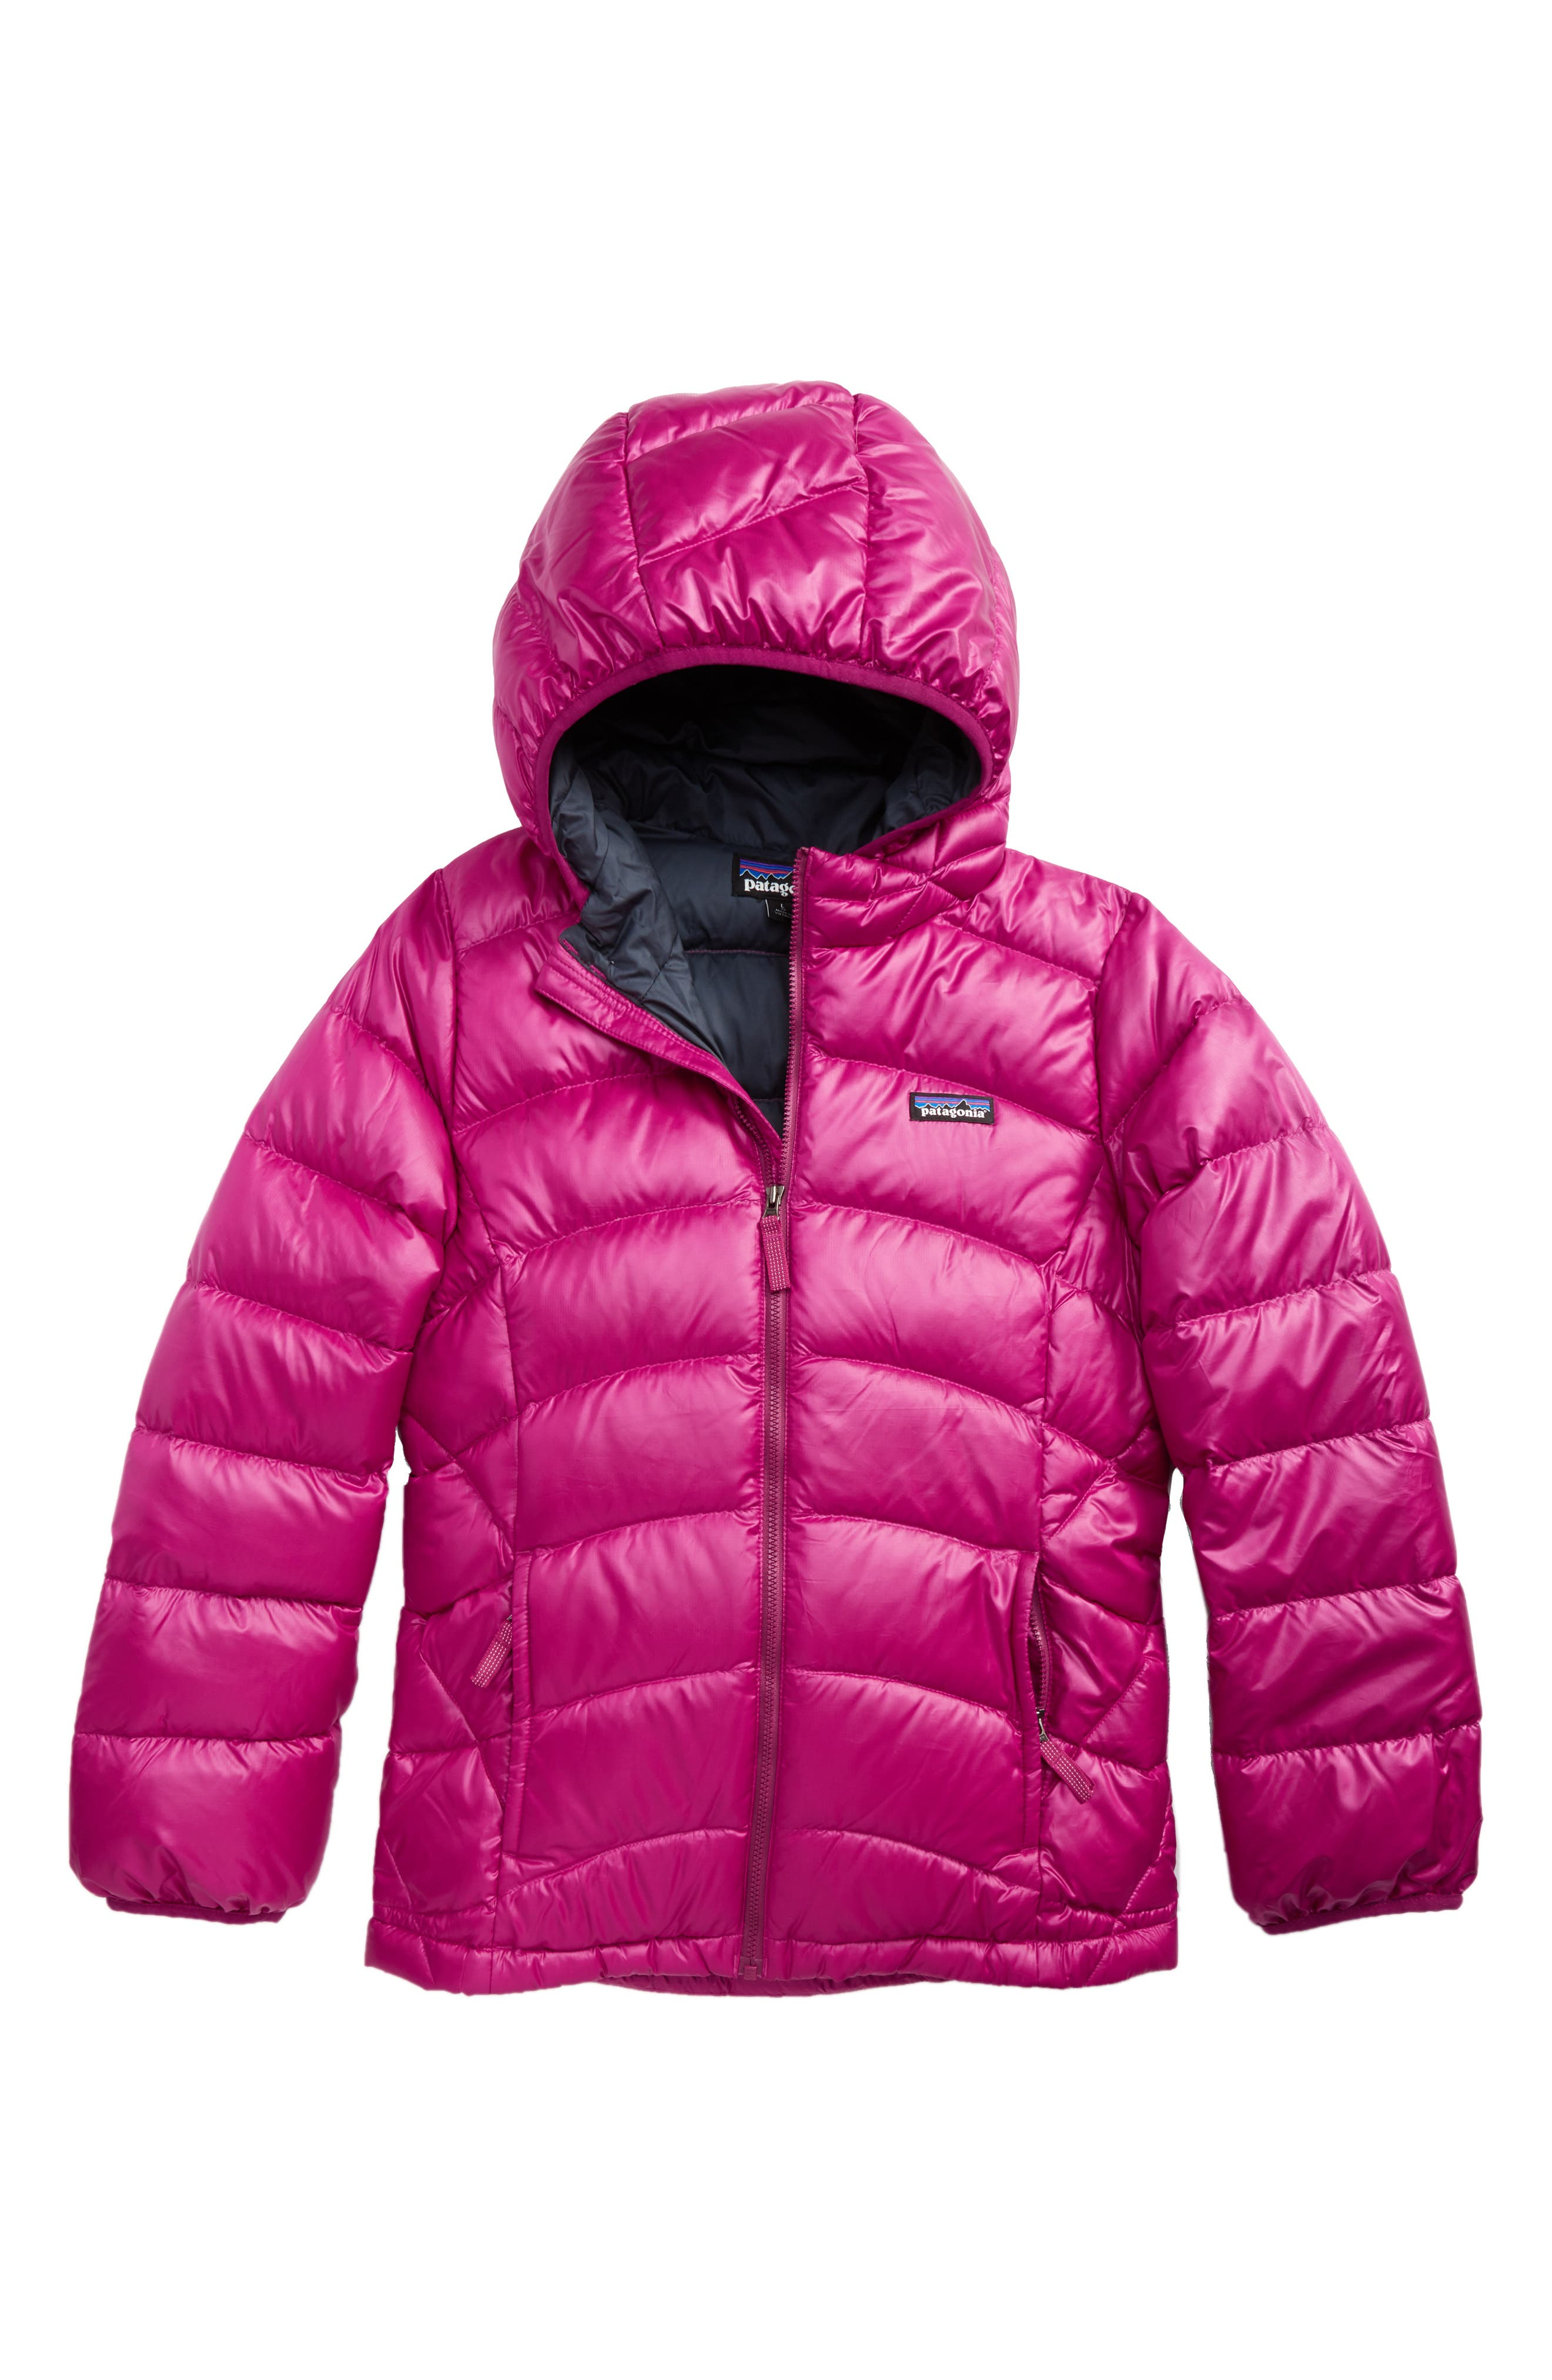 Alternate Image 1 Selected - Patagonia Hi-Loft Down Sweater Hooded Jacket (Little Girls & Big Girls)